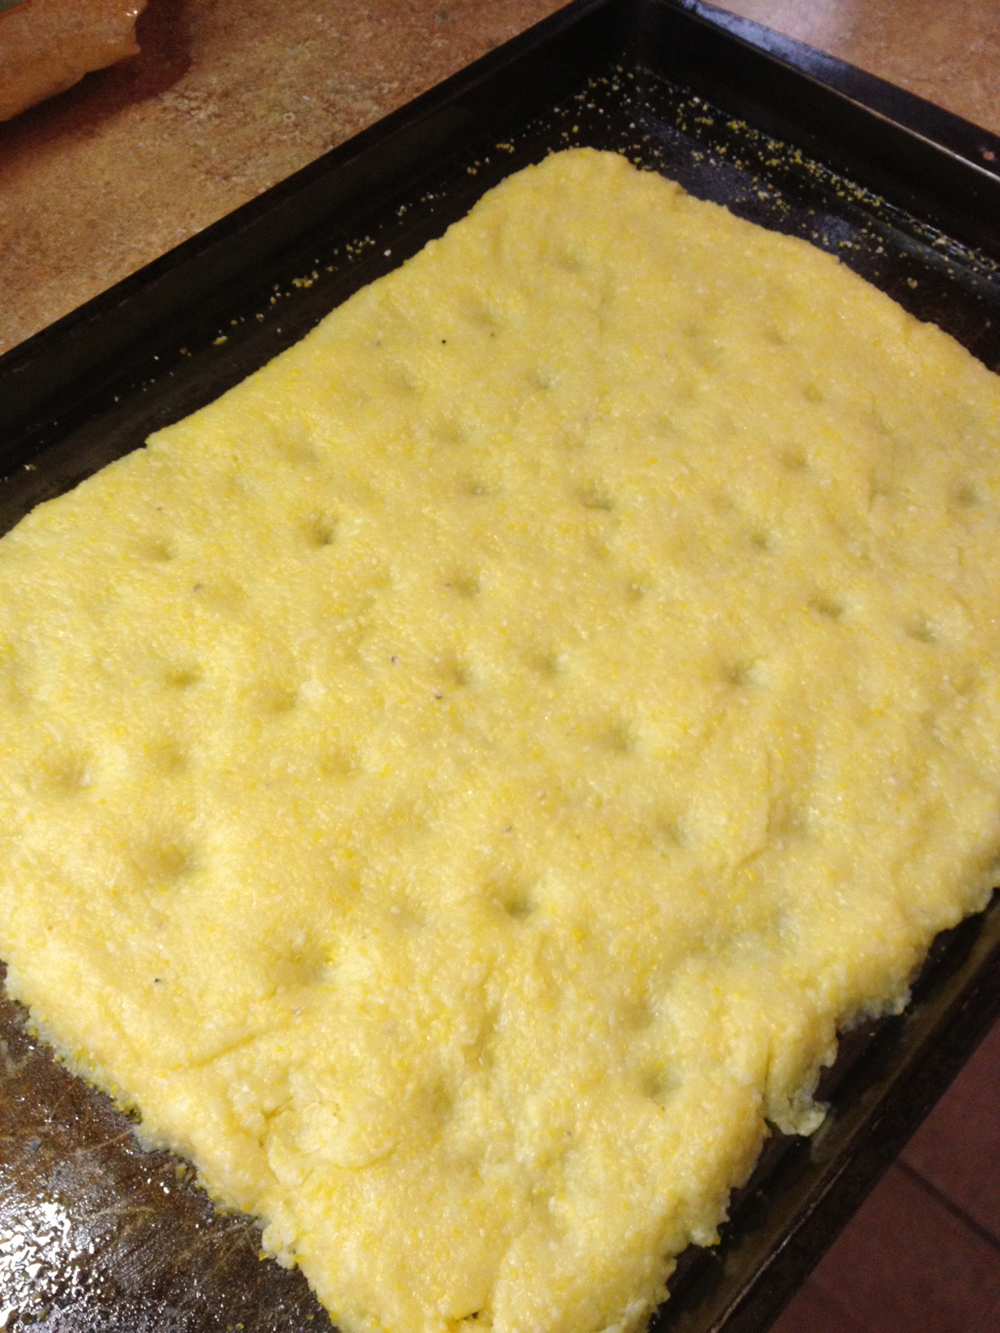 The polenta crust, shaped and ready to bake.